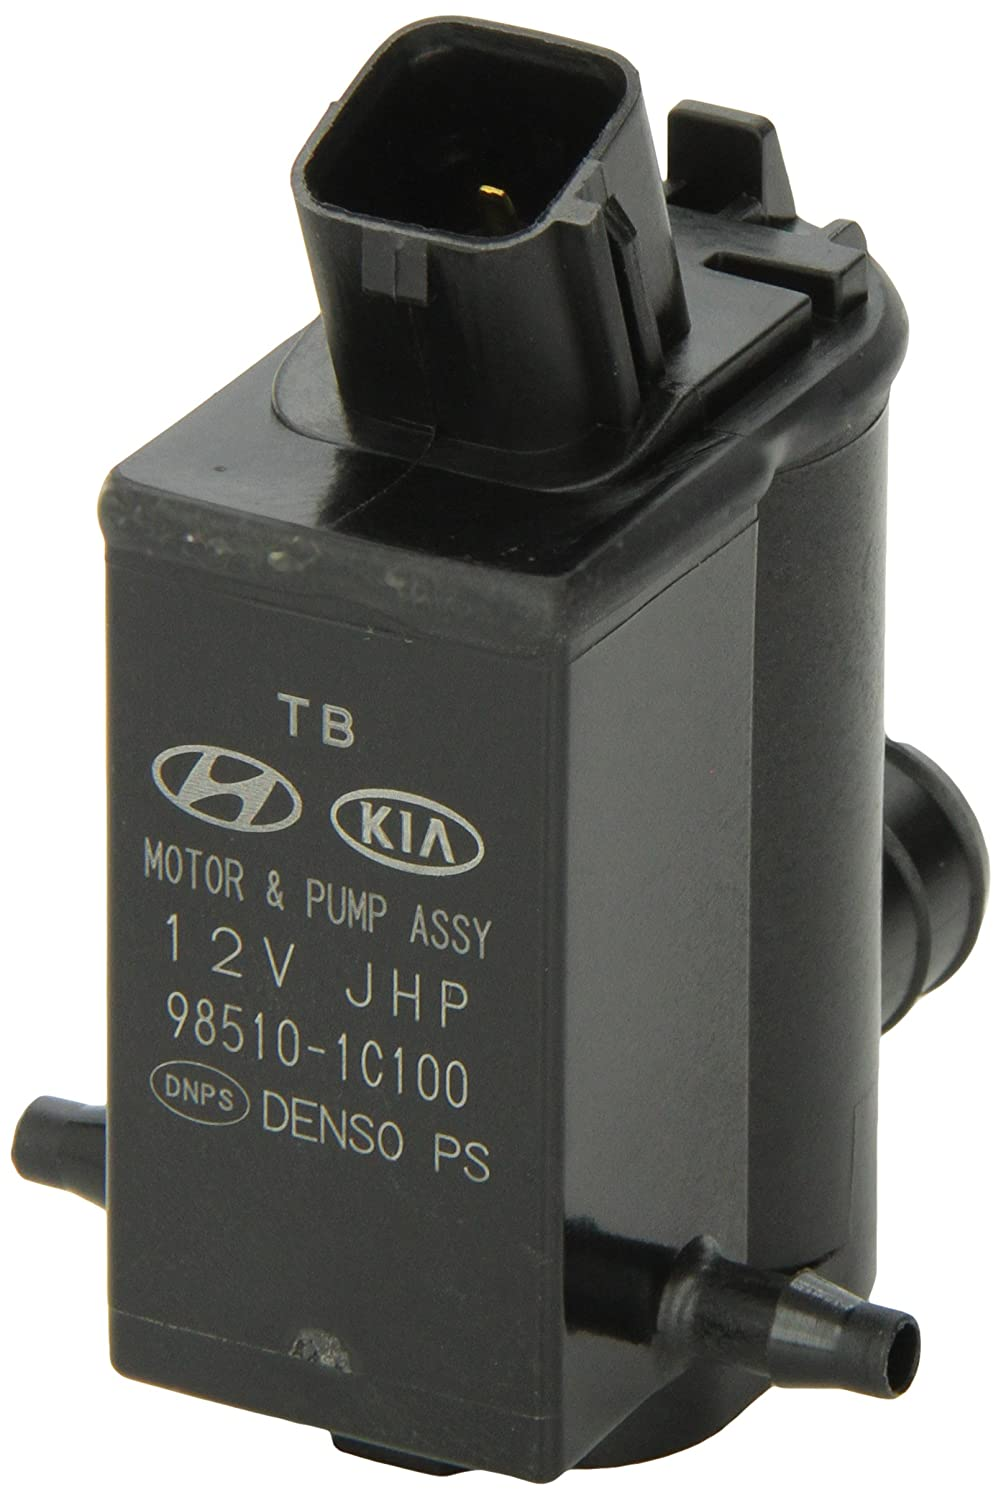 Genuine Hyundai 98510-1C100 Windshield Washer Motor and Pump Assembly